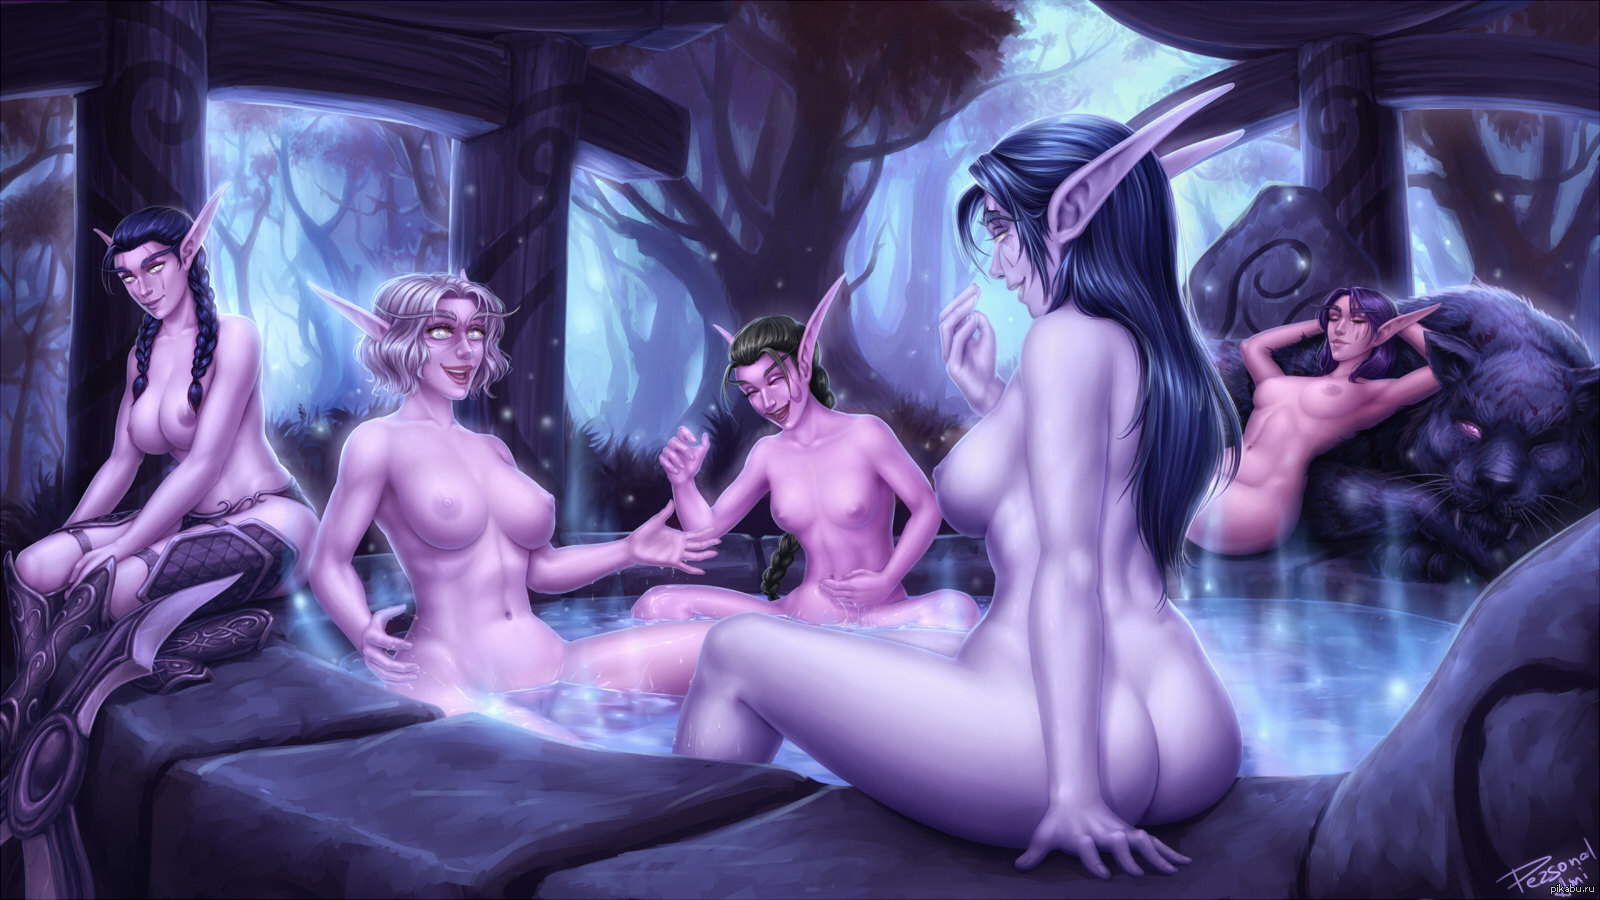 Night elf nude art galleries erotic pictures